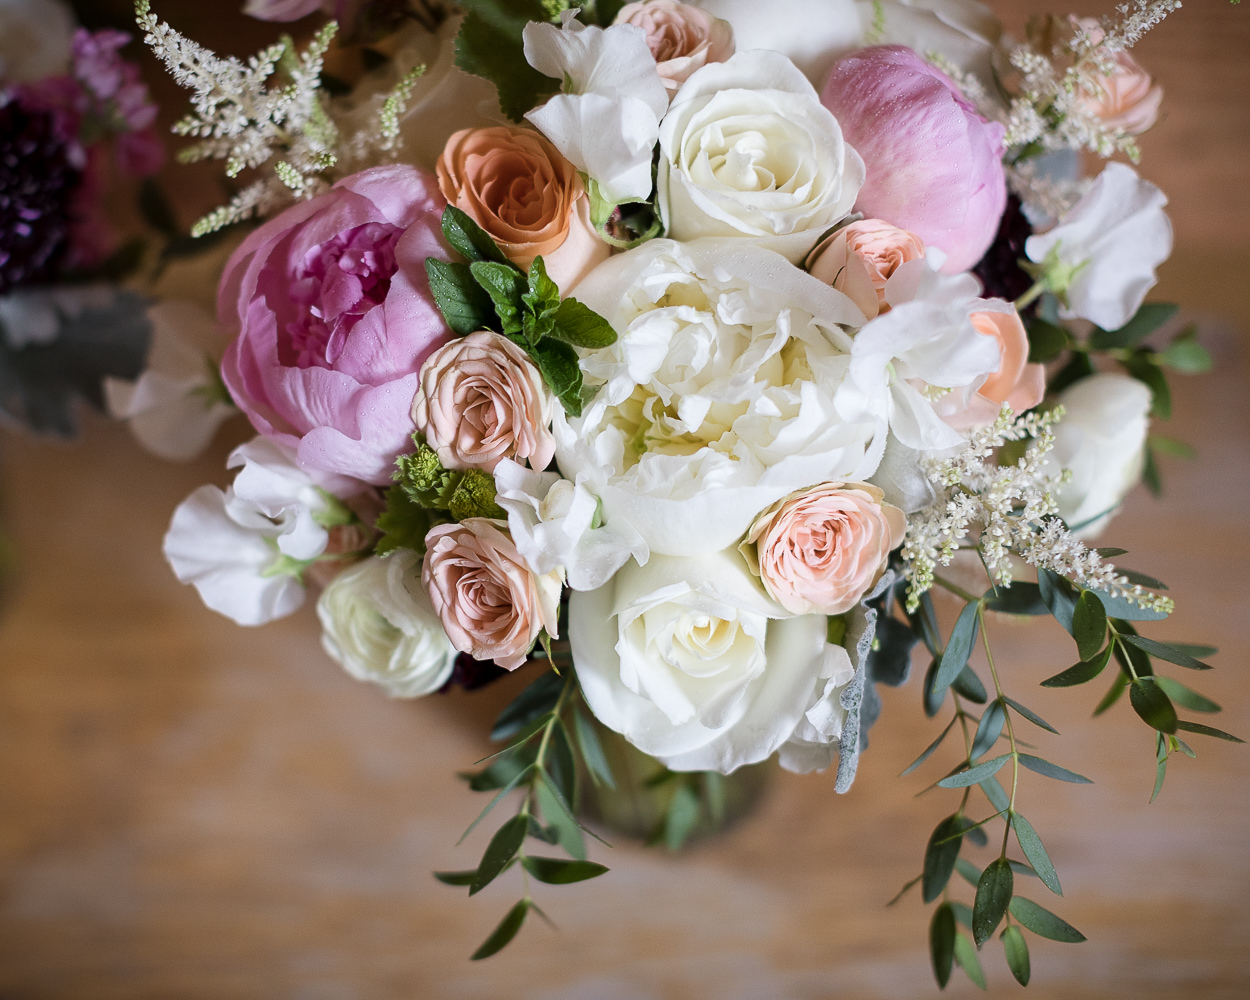 A pink and white wedding bouquet with peonies and roses